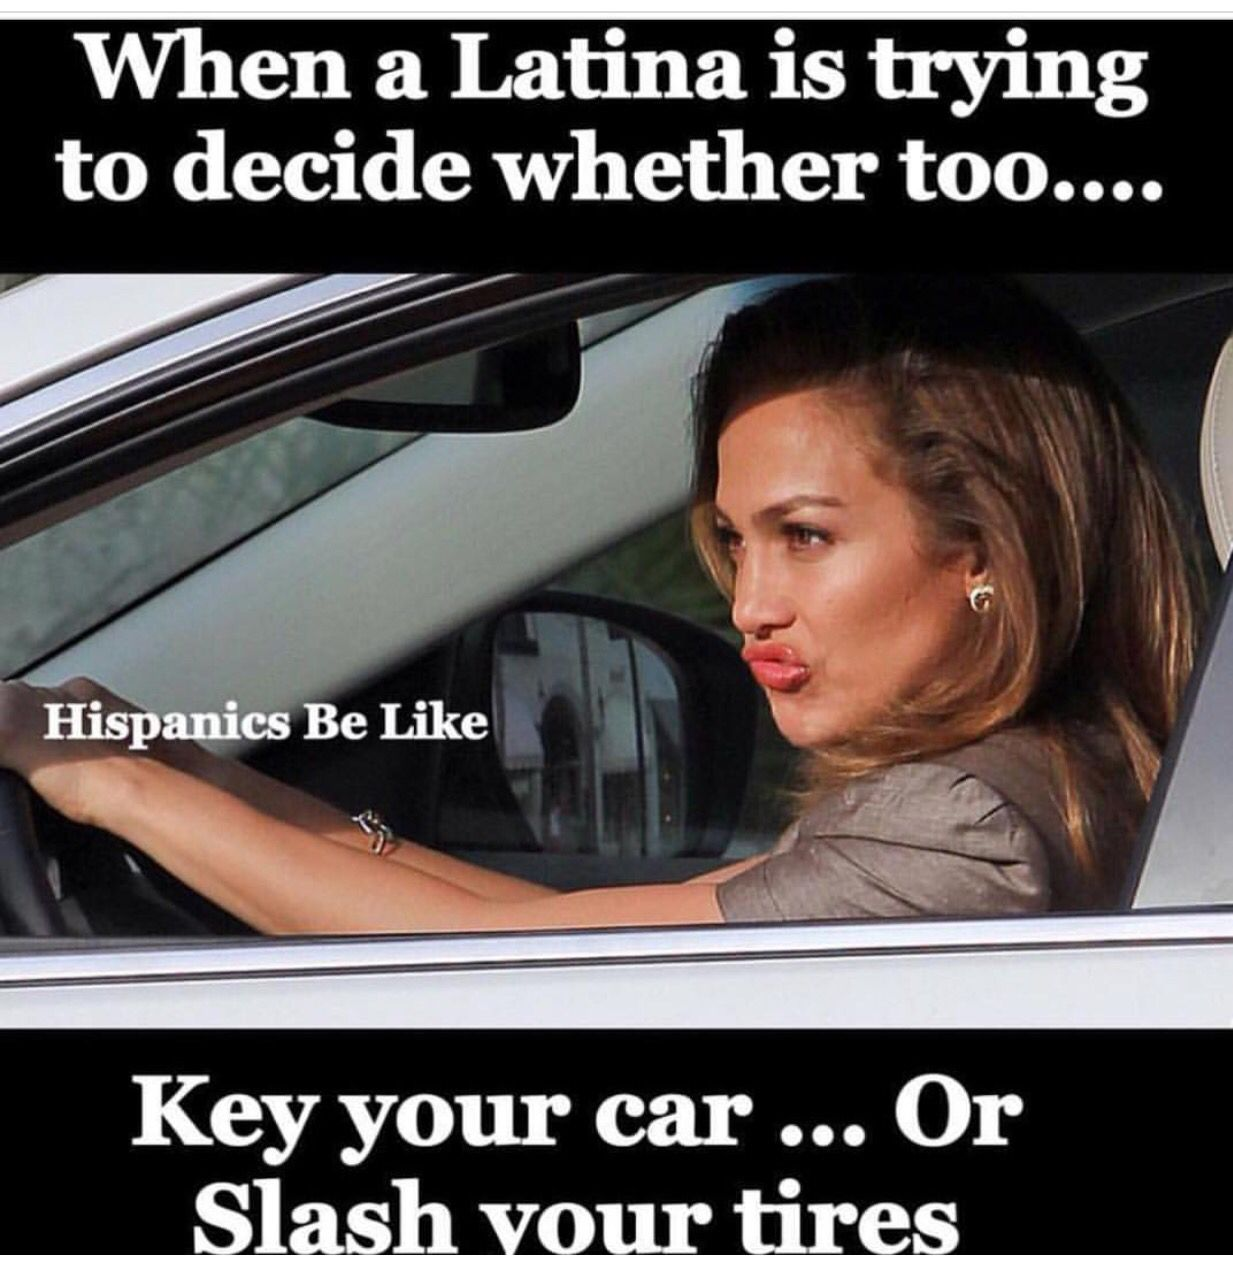 Date a Latina, they say! They are fun, they say lmao